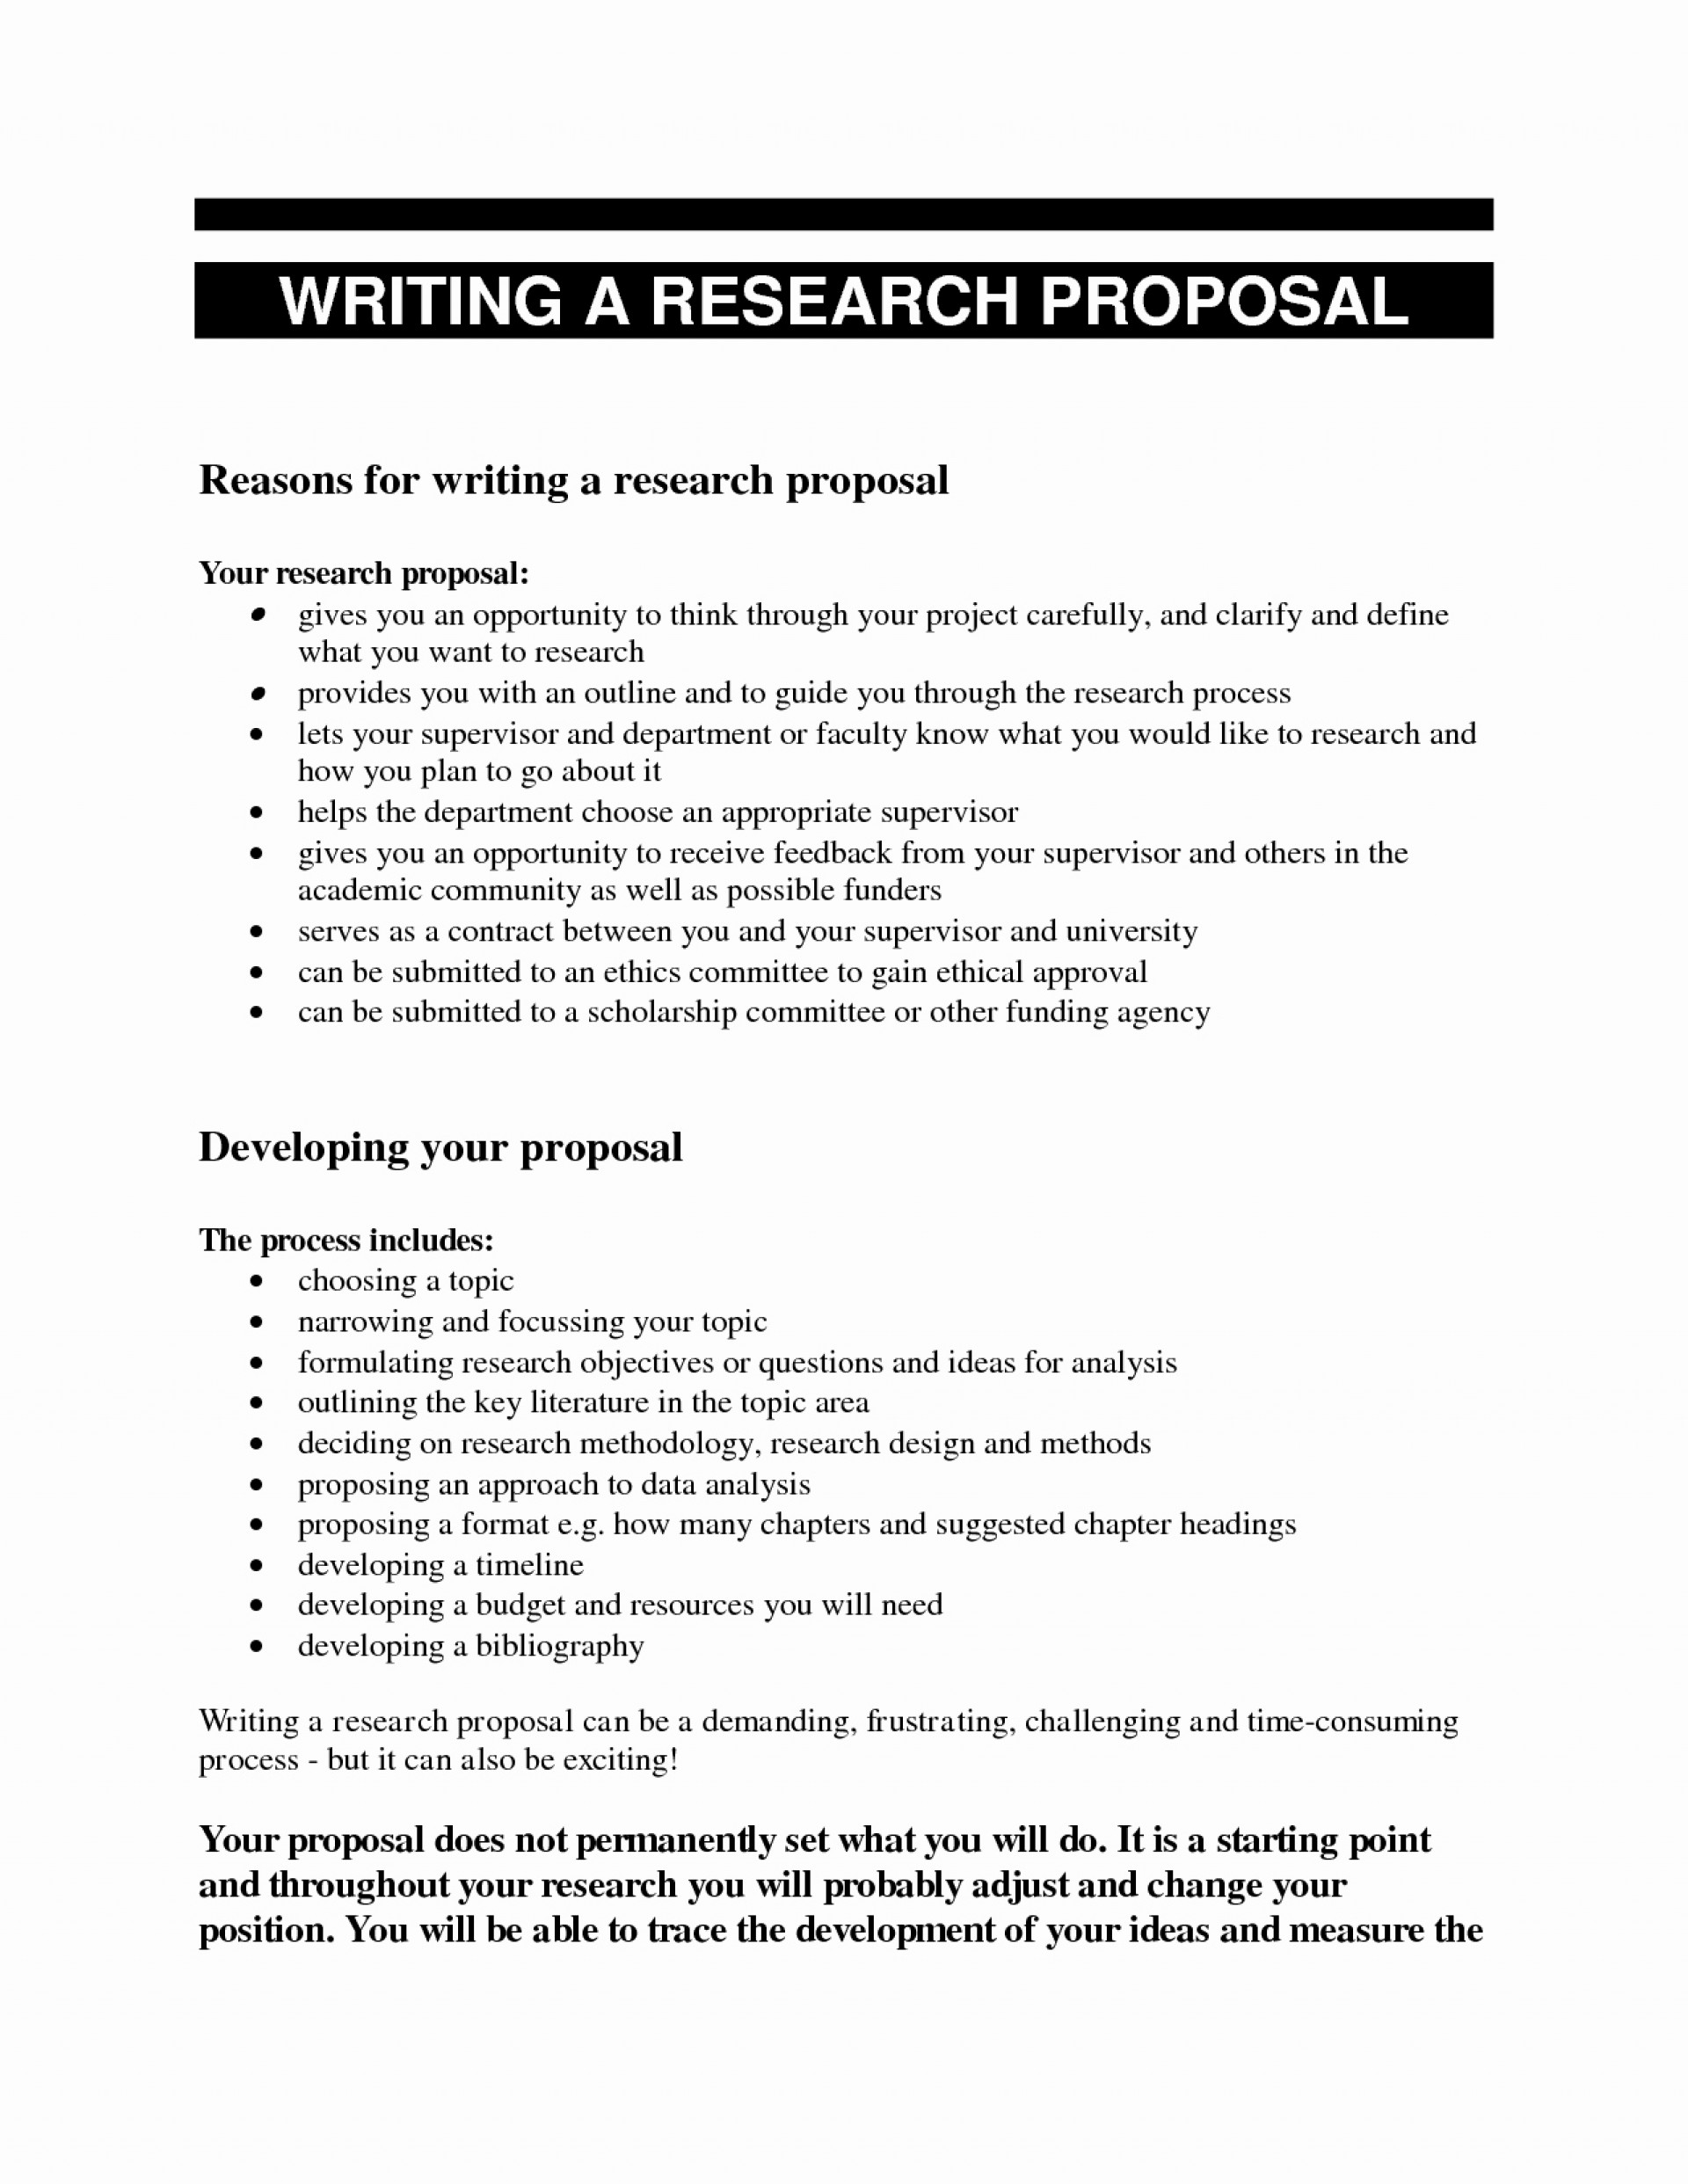 016 How To Write Research Paper Proposal Sample Essay Template For Topics College Students Amazing A In Apa Format 1920